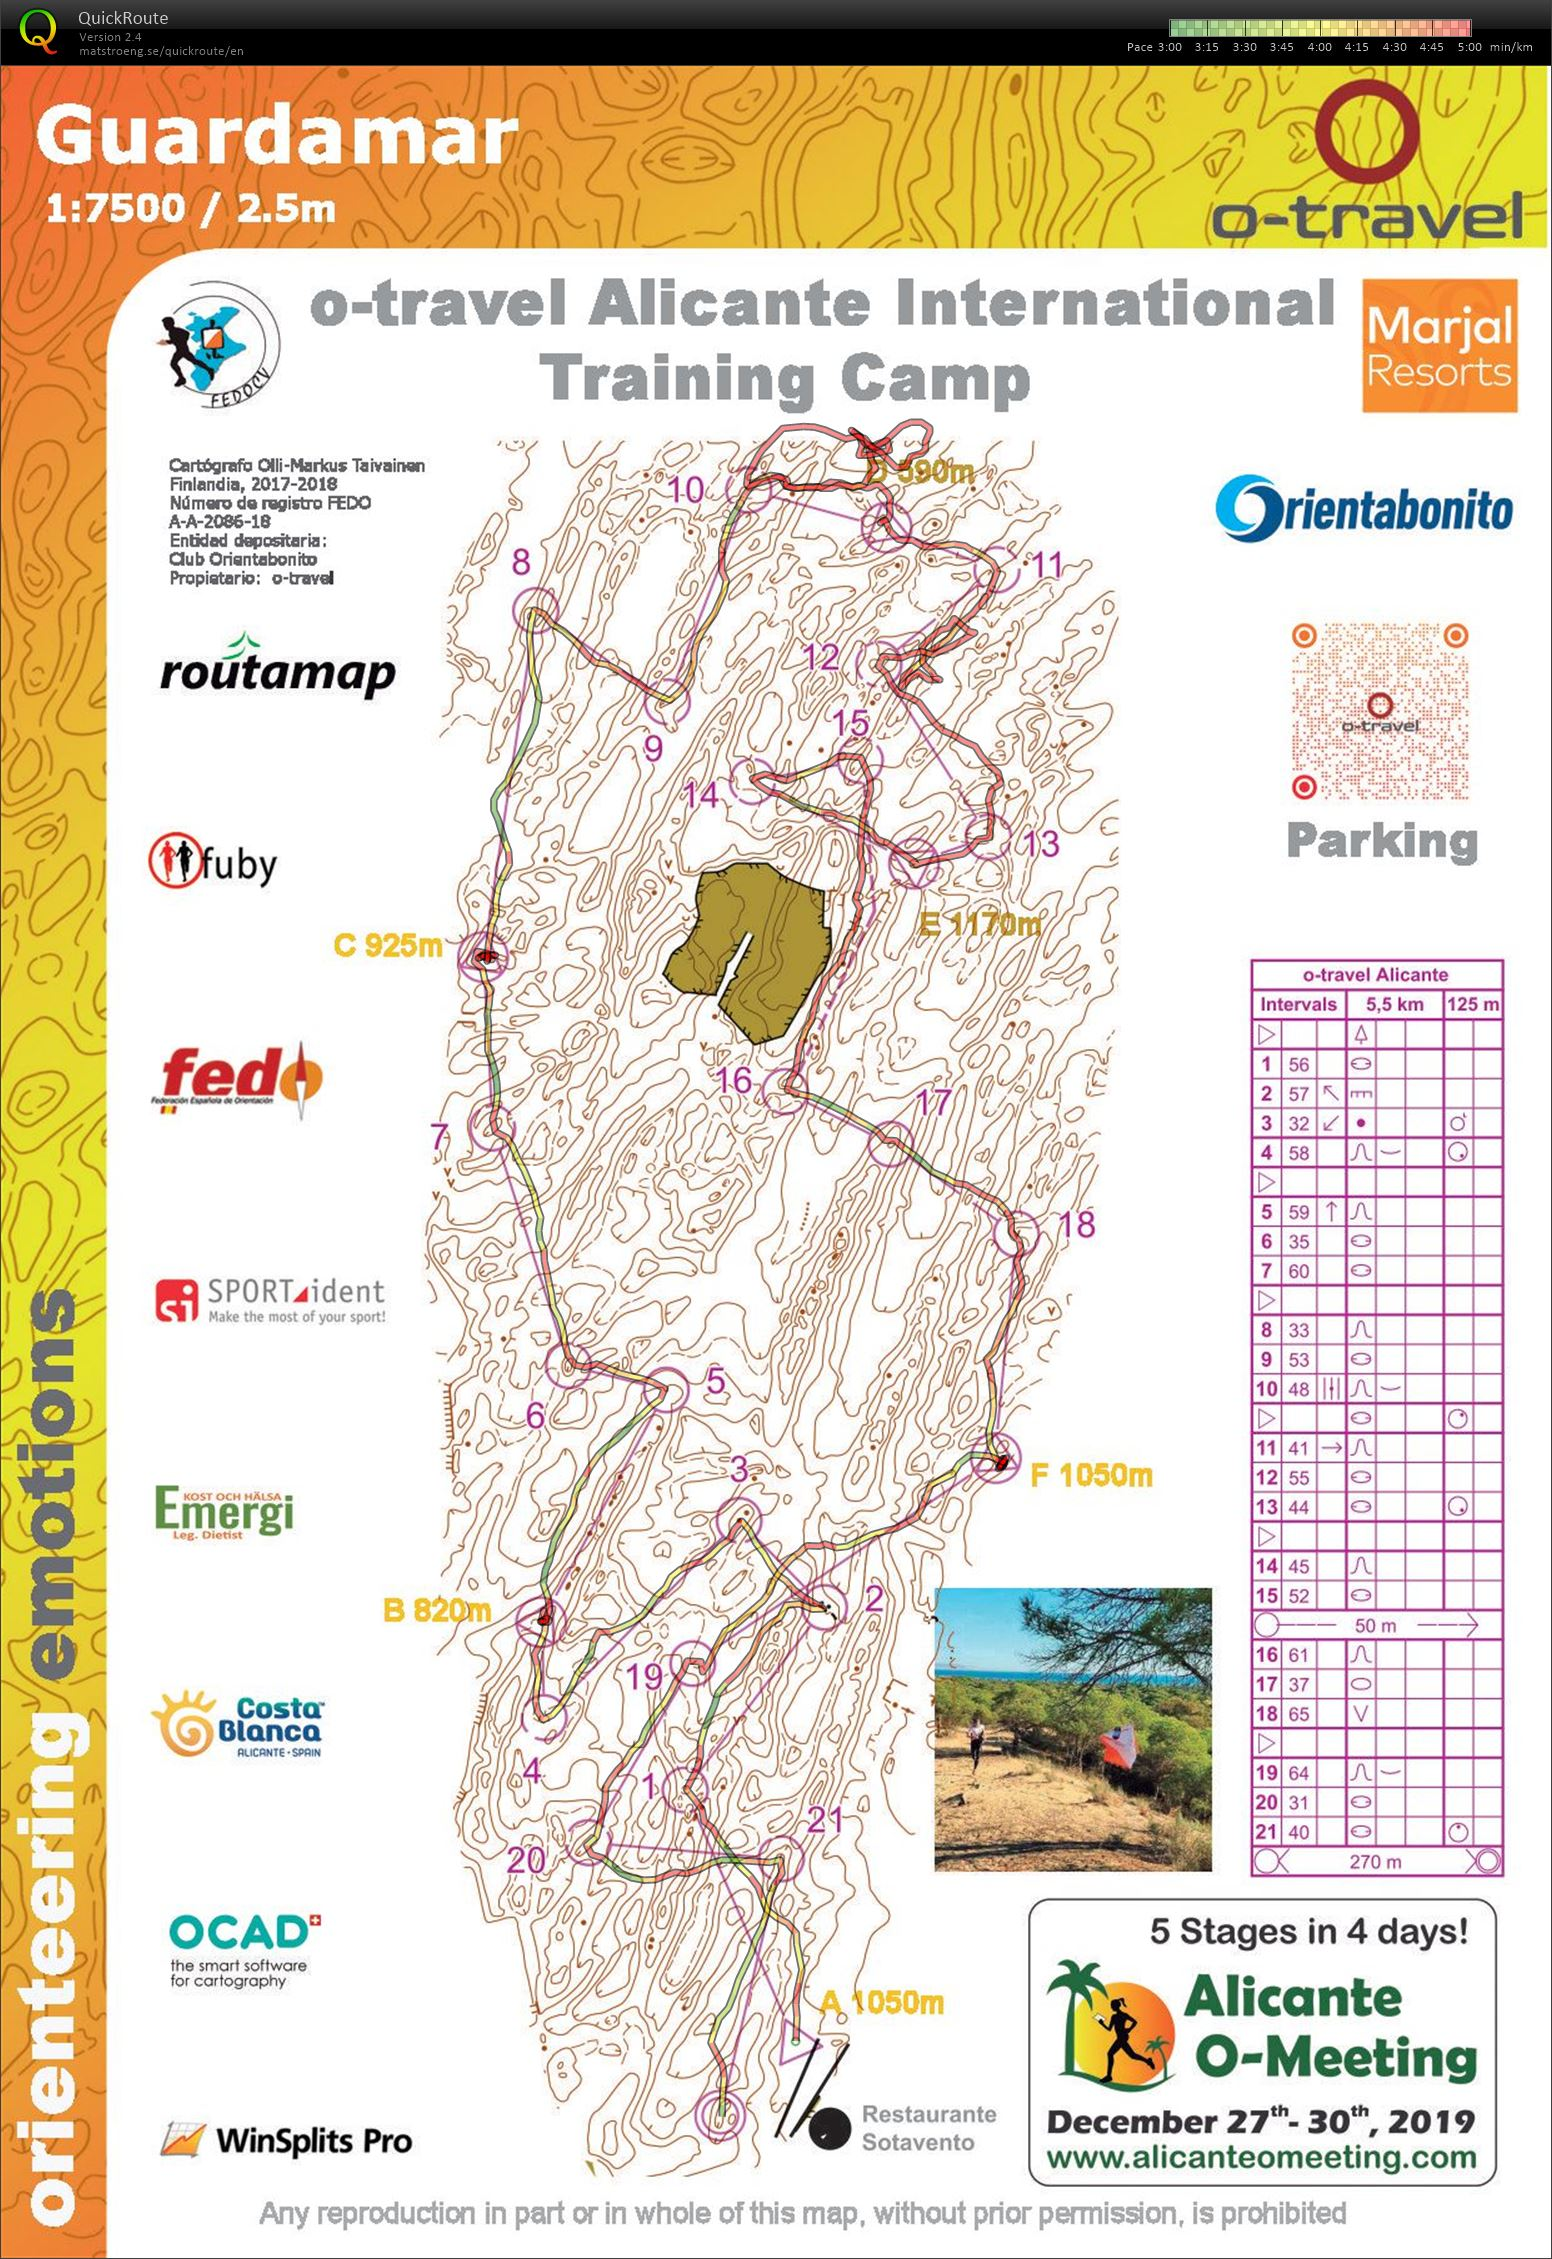 Alicante camp #11 - O-intervals (19/02/2019)